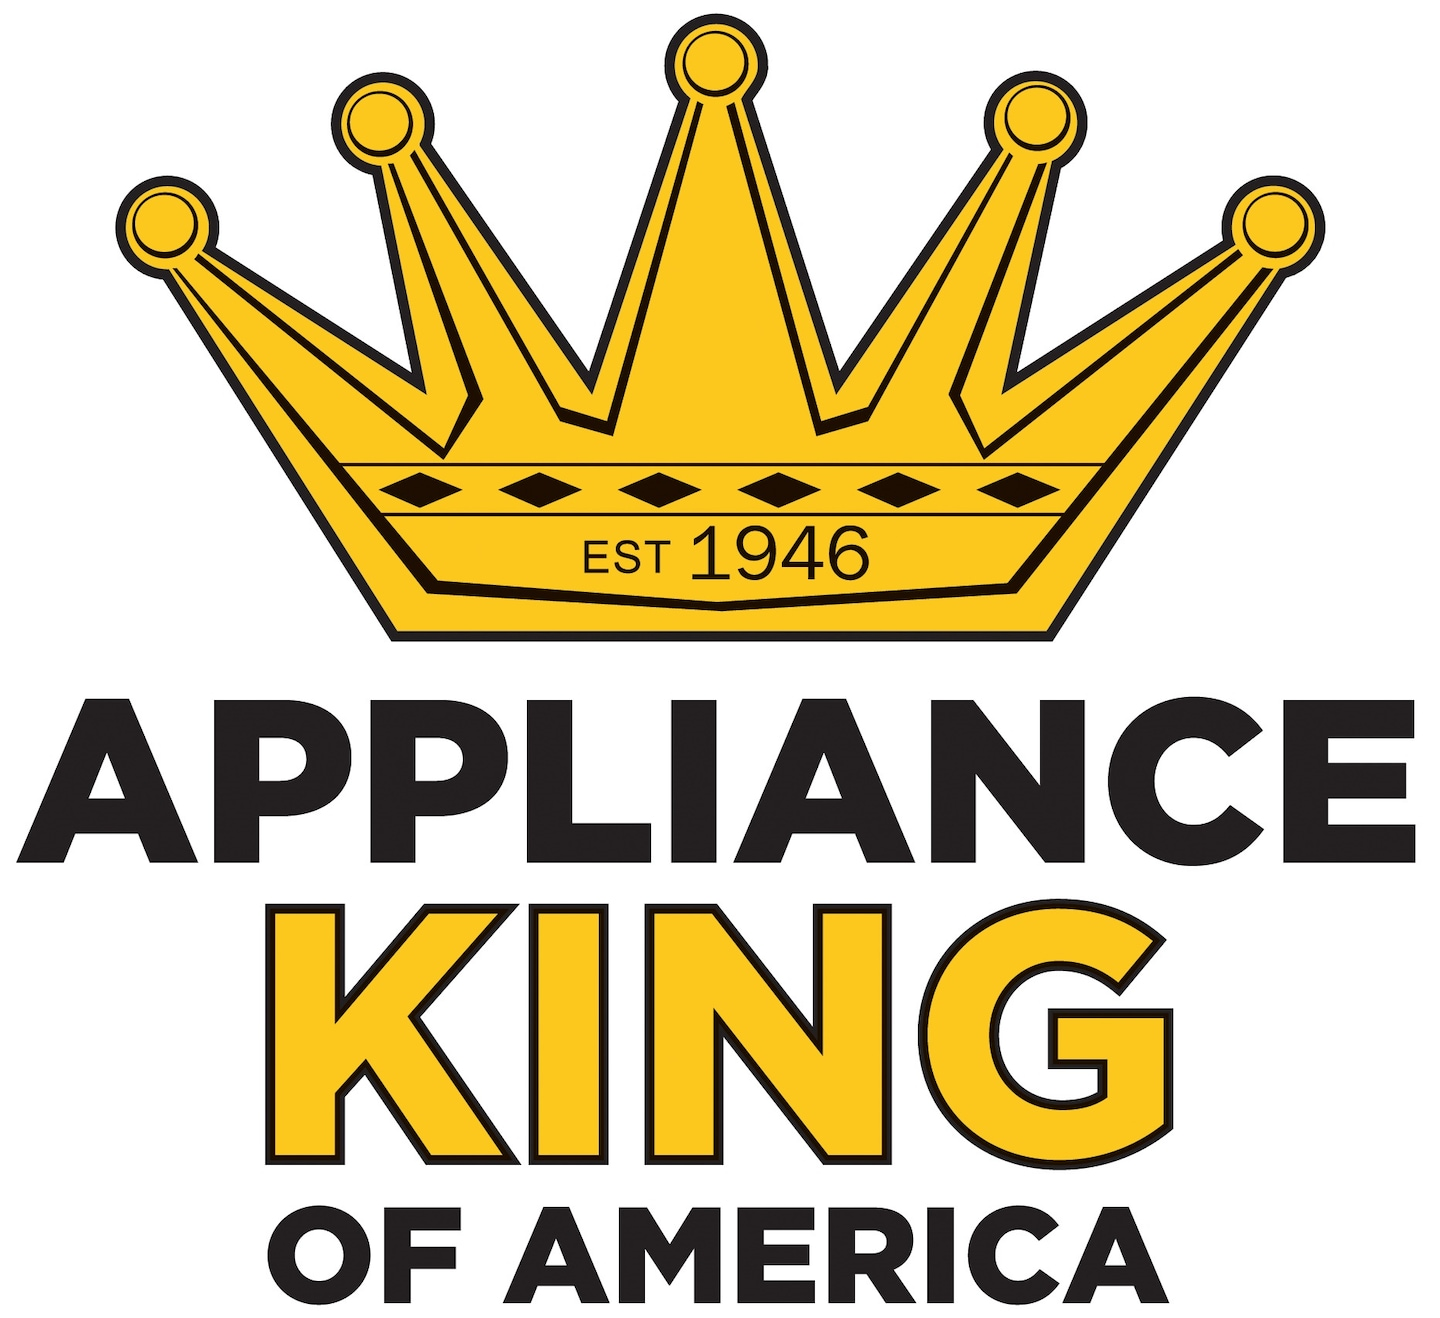 Appliance King of America Inc